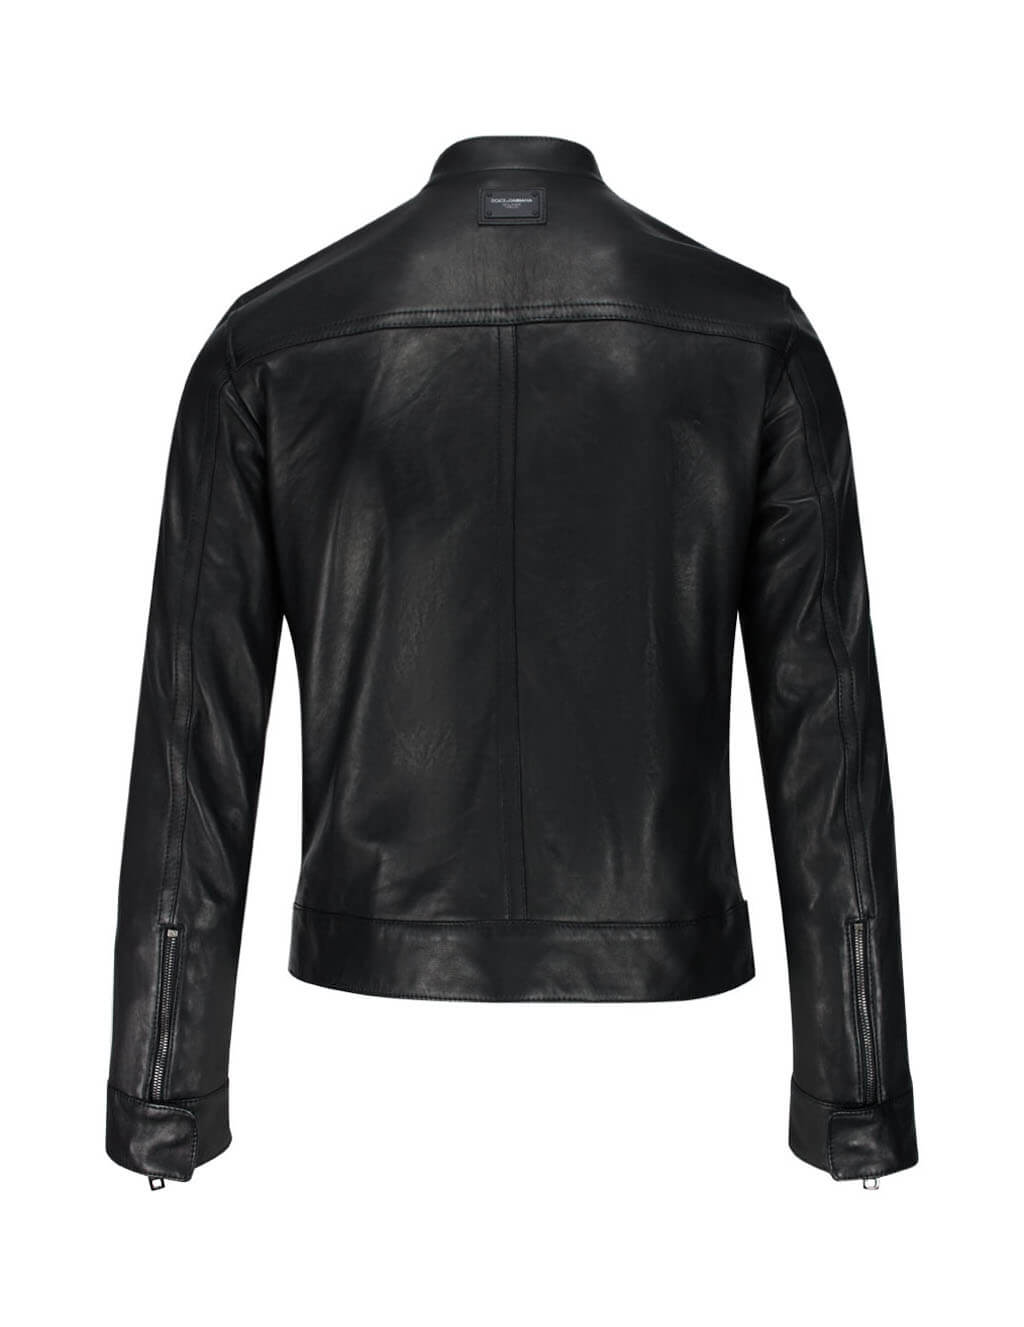 Dolce&Gabbana Men's Giulio Fashion Black DNA Leather Jacket G9RE4LHULF9N0000